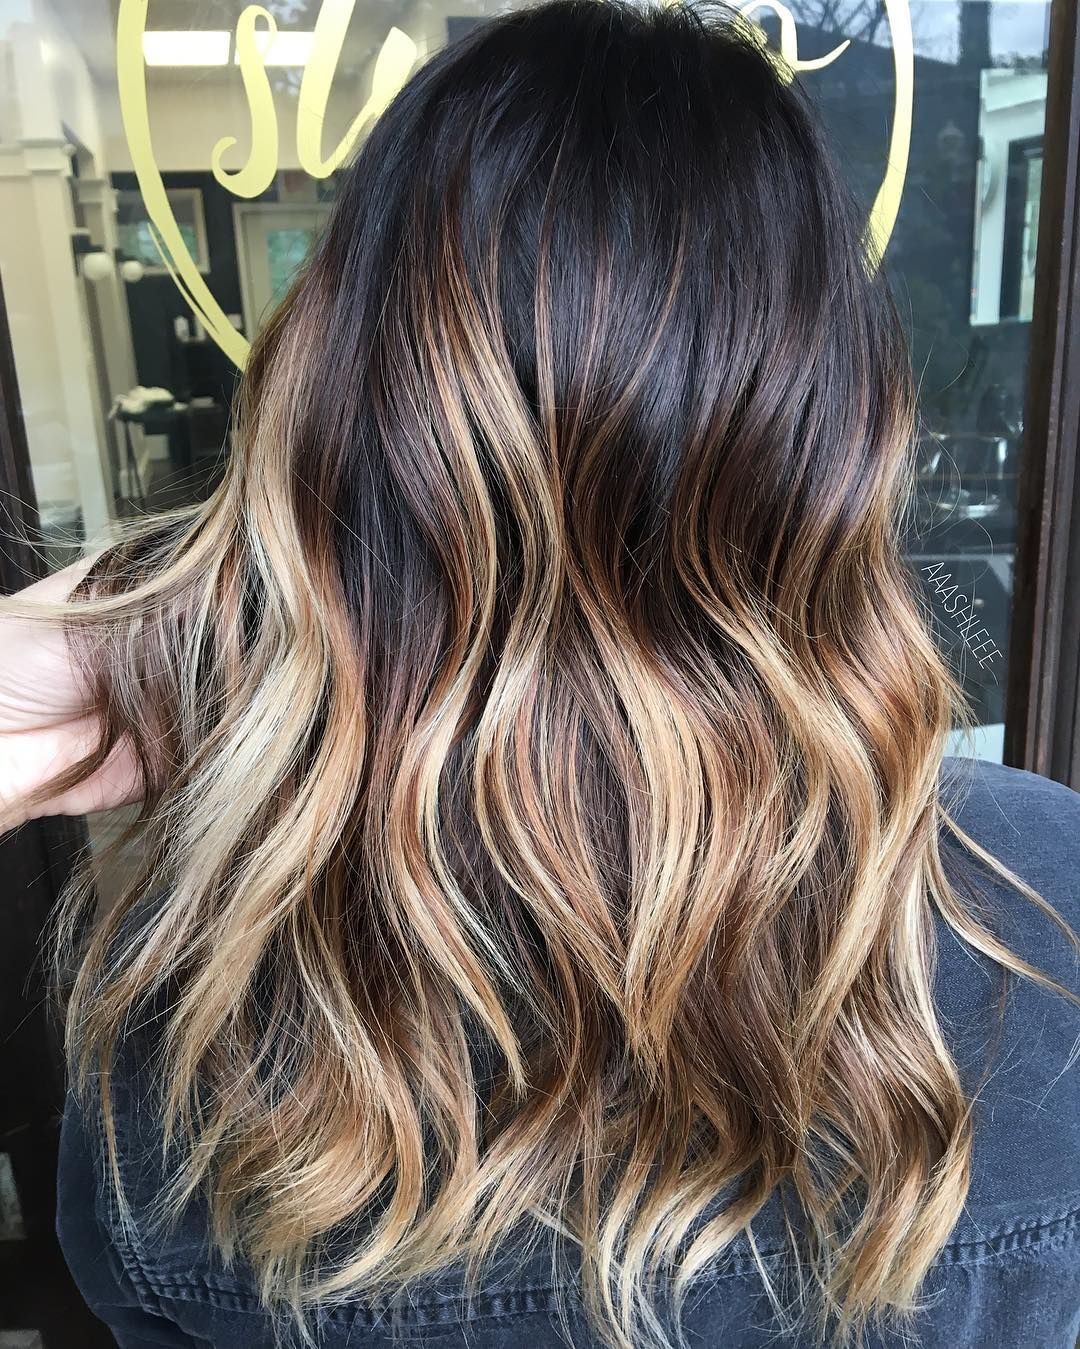 ontrend brown to blonde balayage looks that will make you